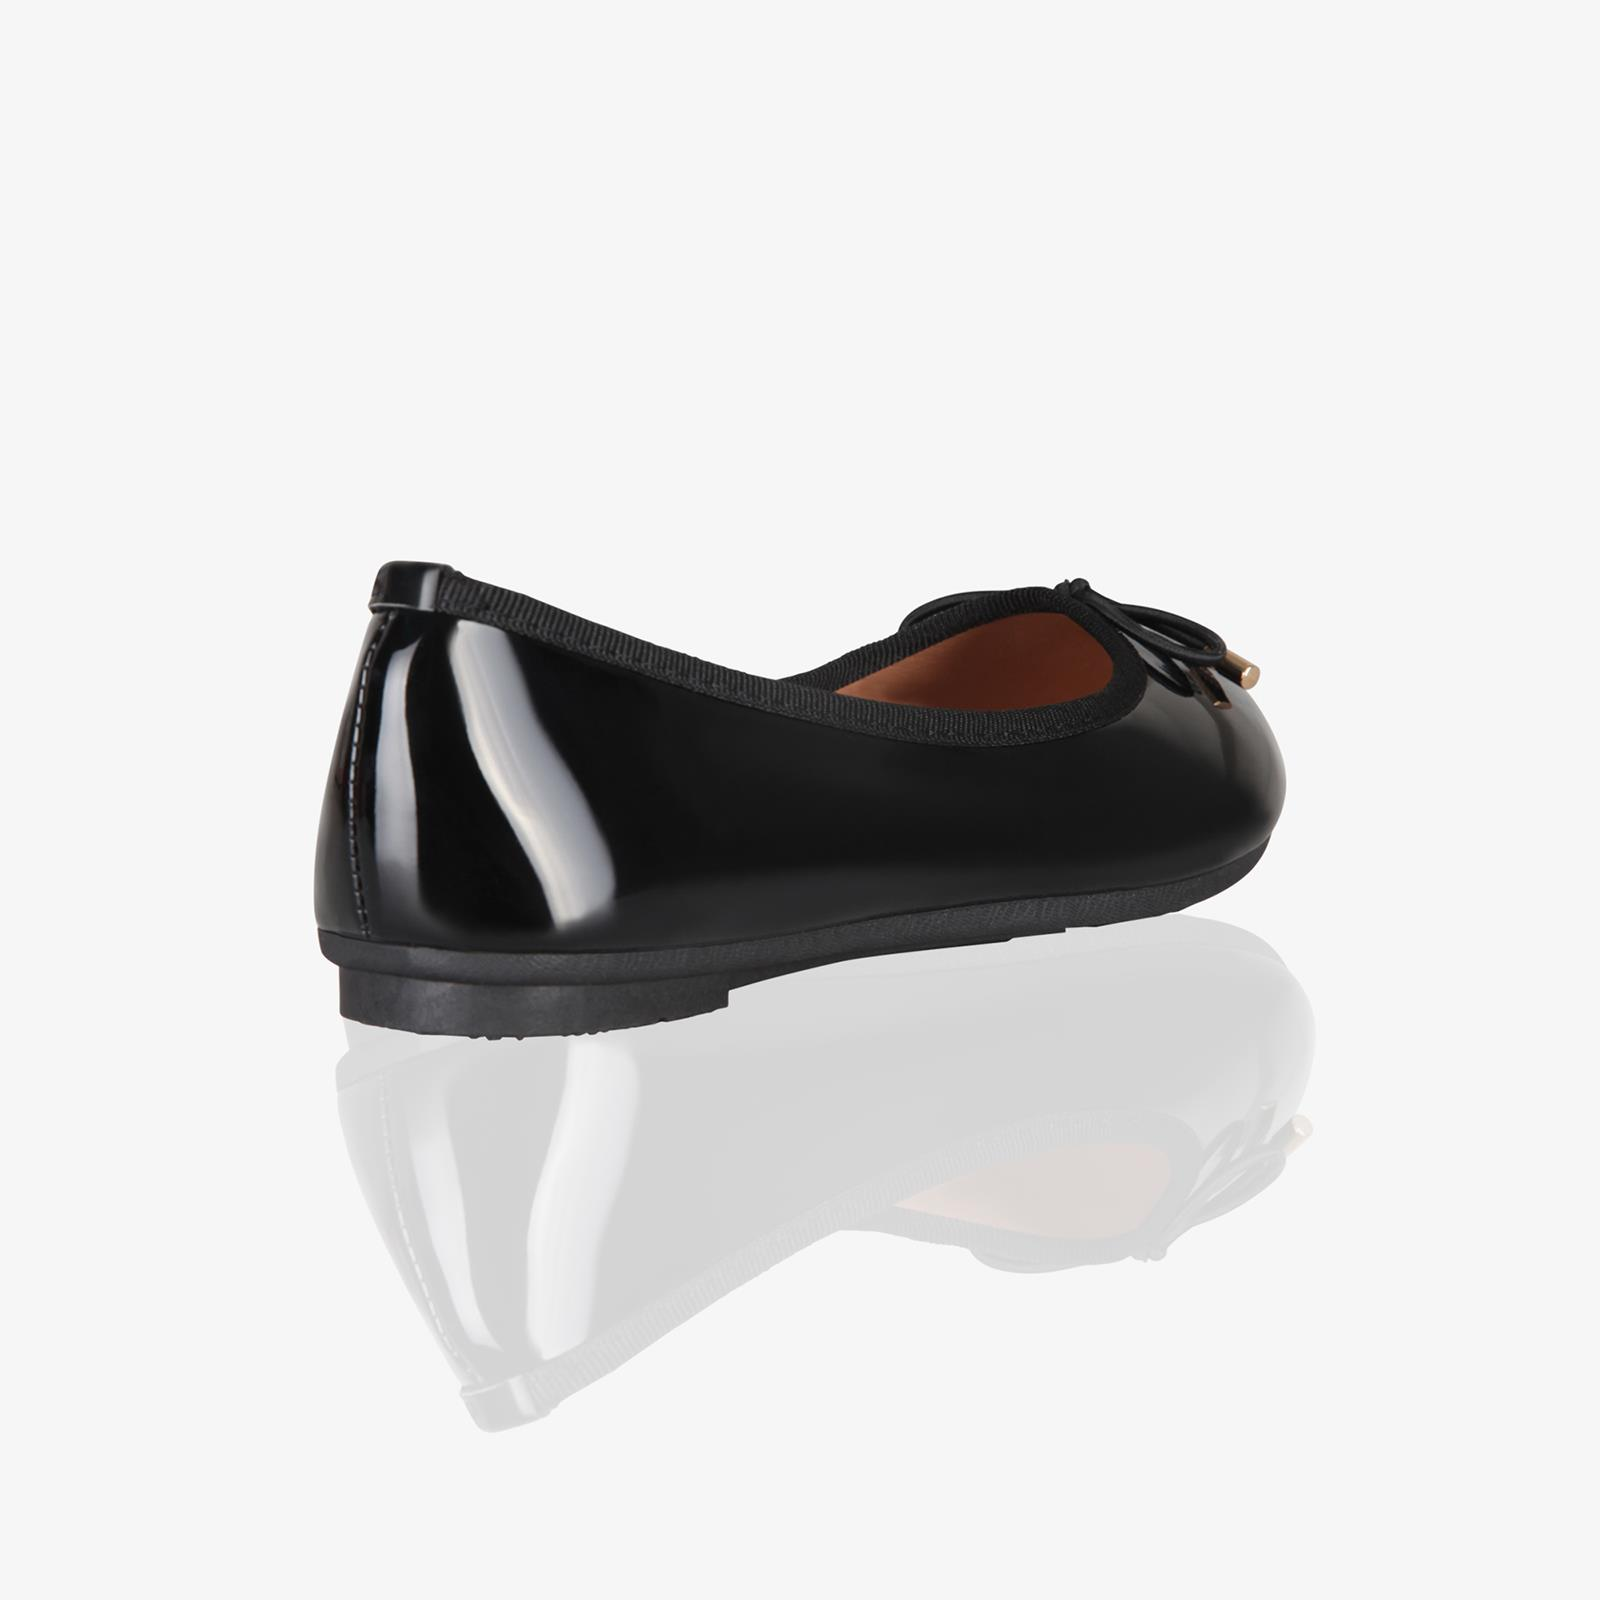 Womens-Ladies-Patent-Flat-Shoes-Ballerina-Ballet-Dolly-Court-Pumps-Slip-On-Bow thumbnail 4